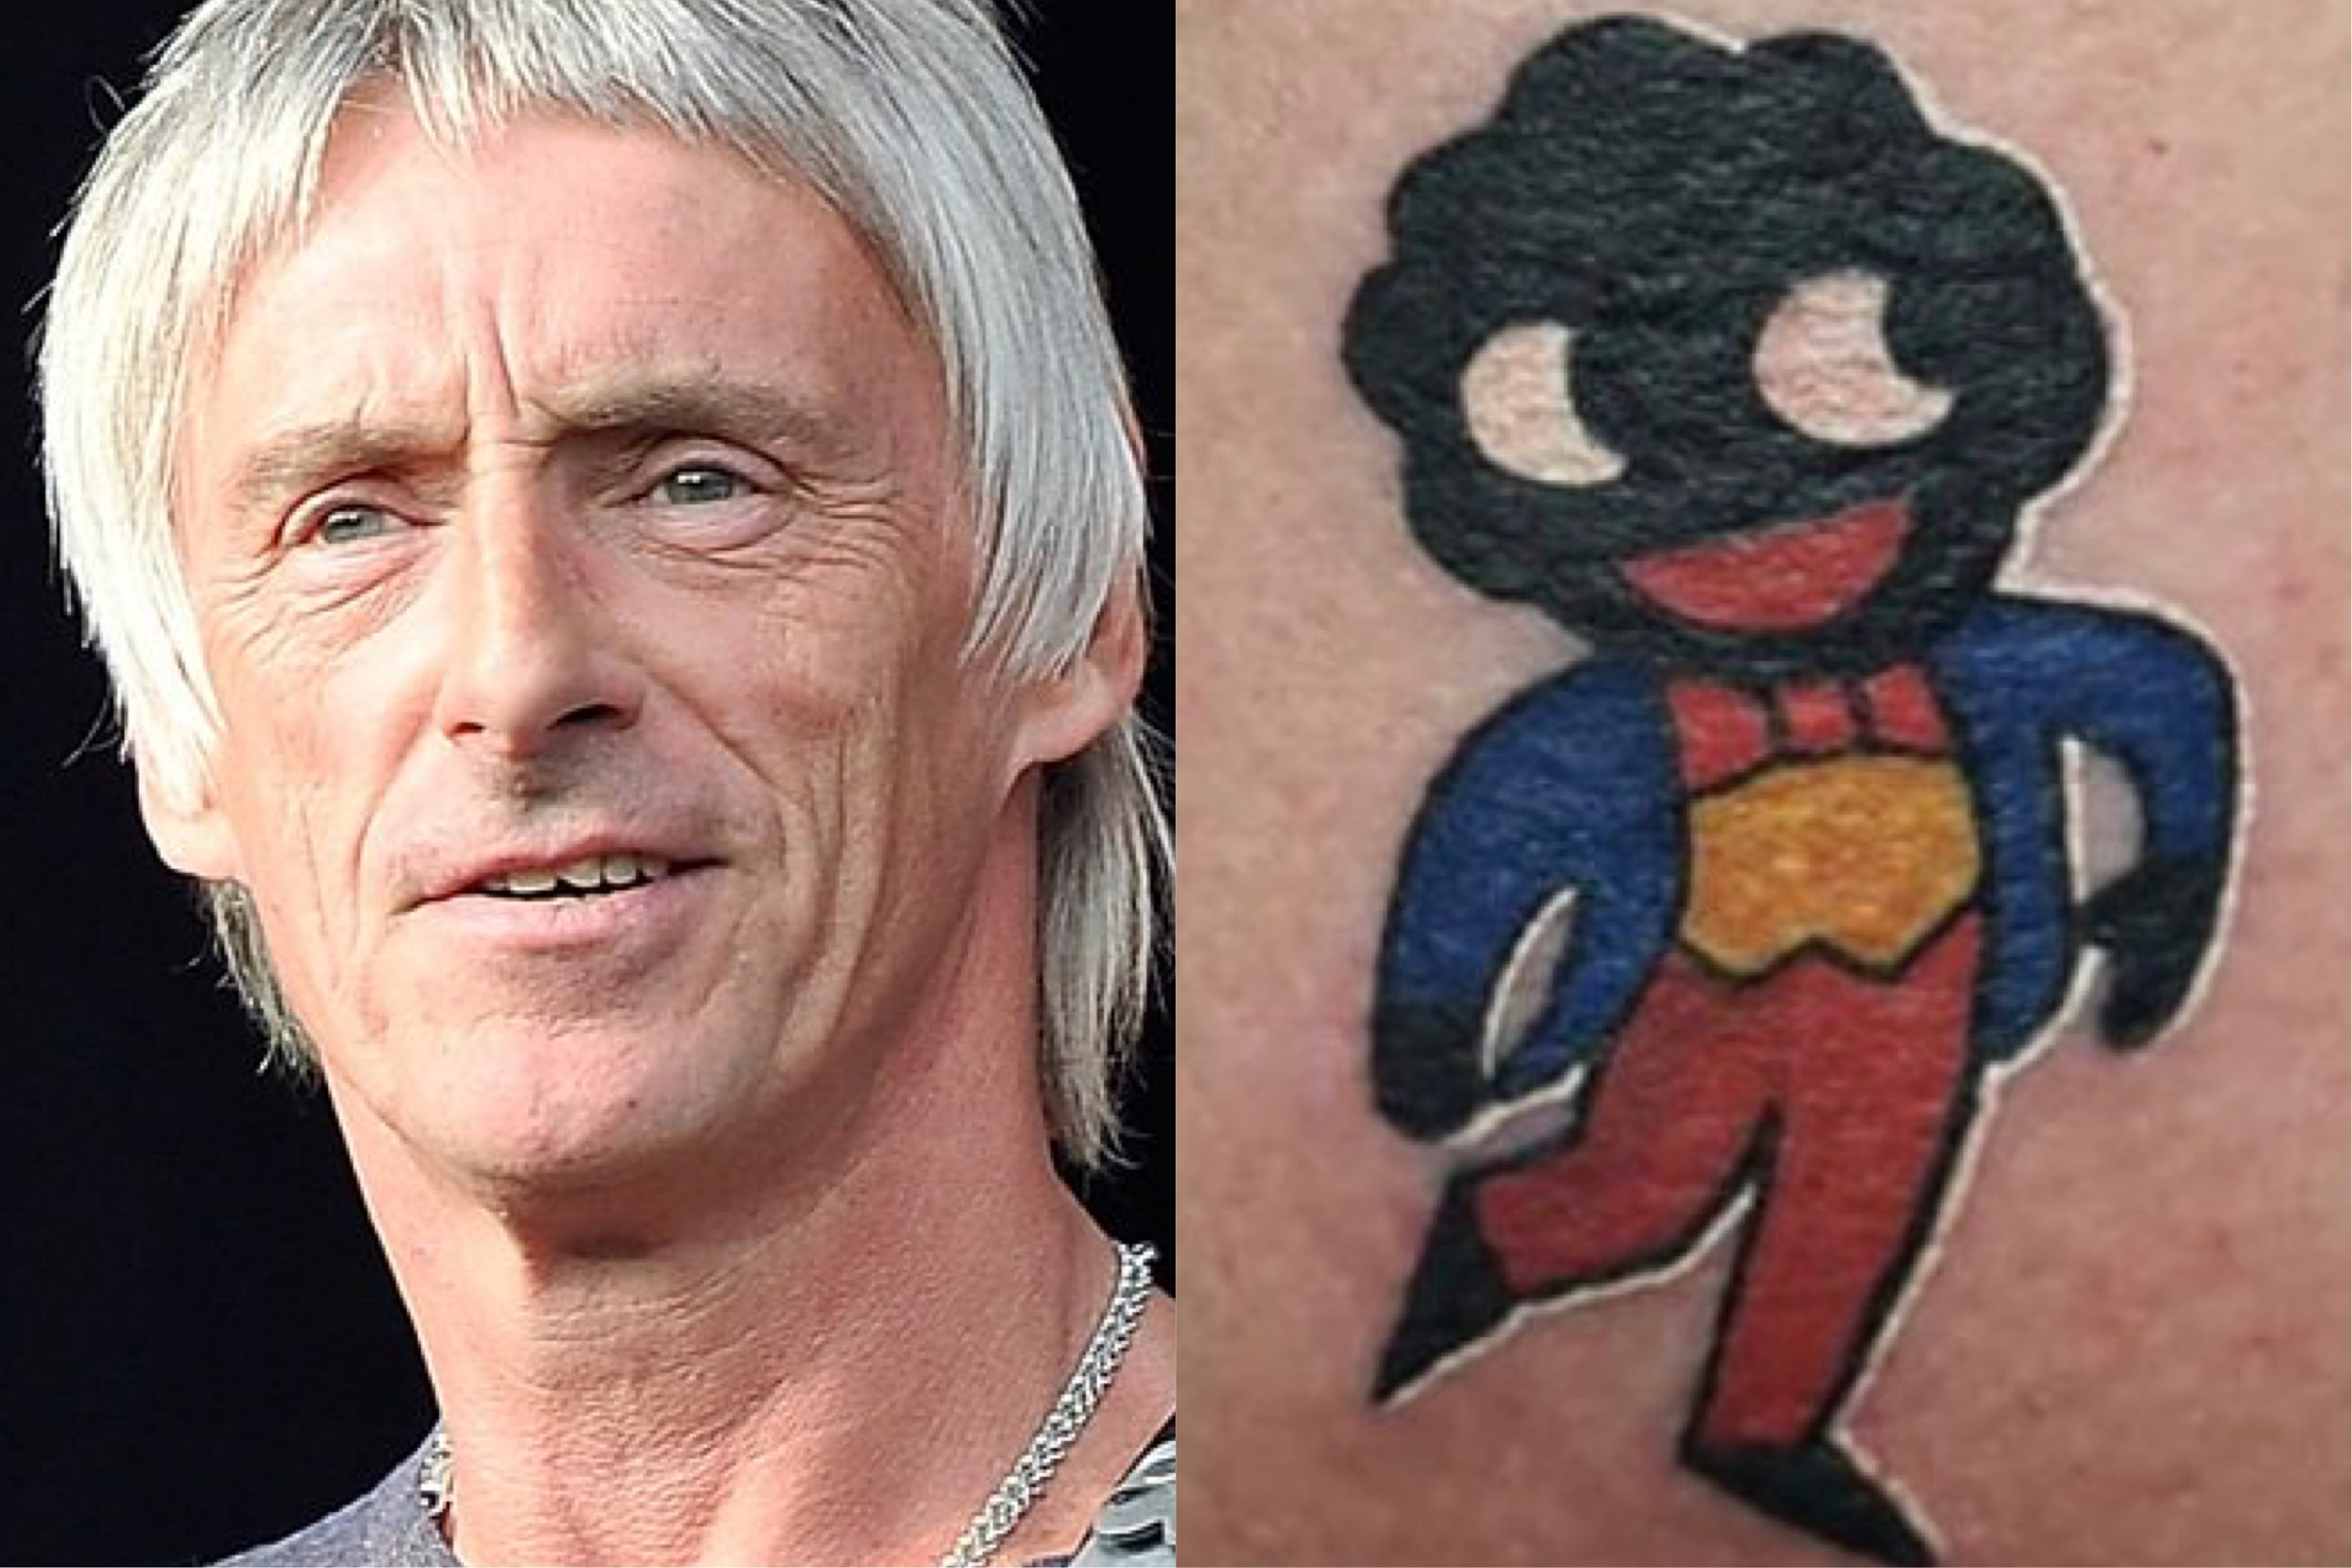 Man asks tattooist for 'the guy from The Jam' and it all goes wrong